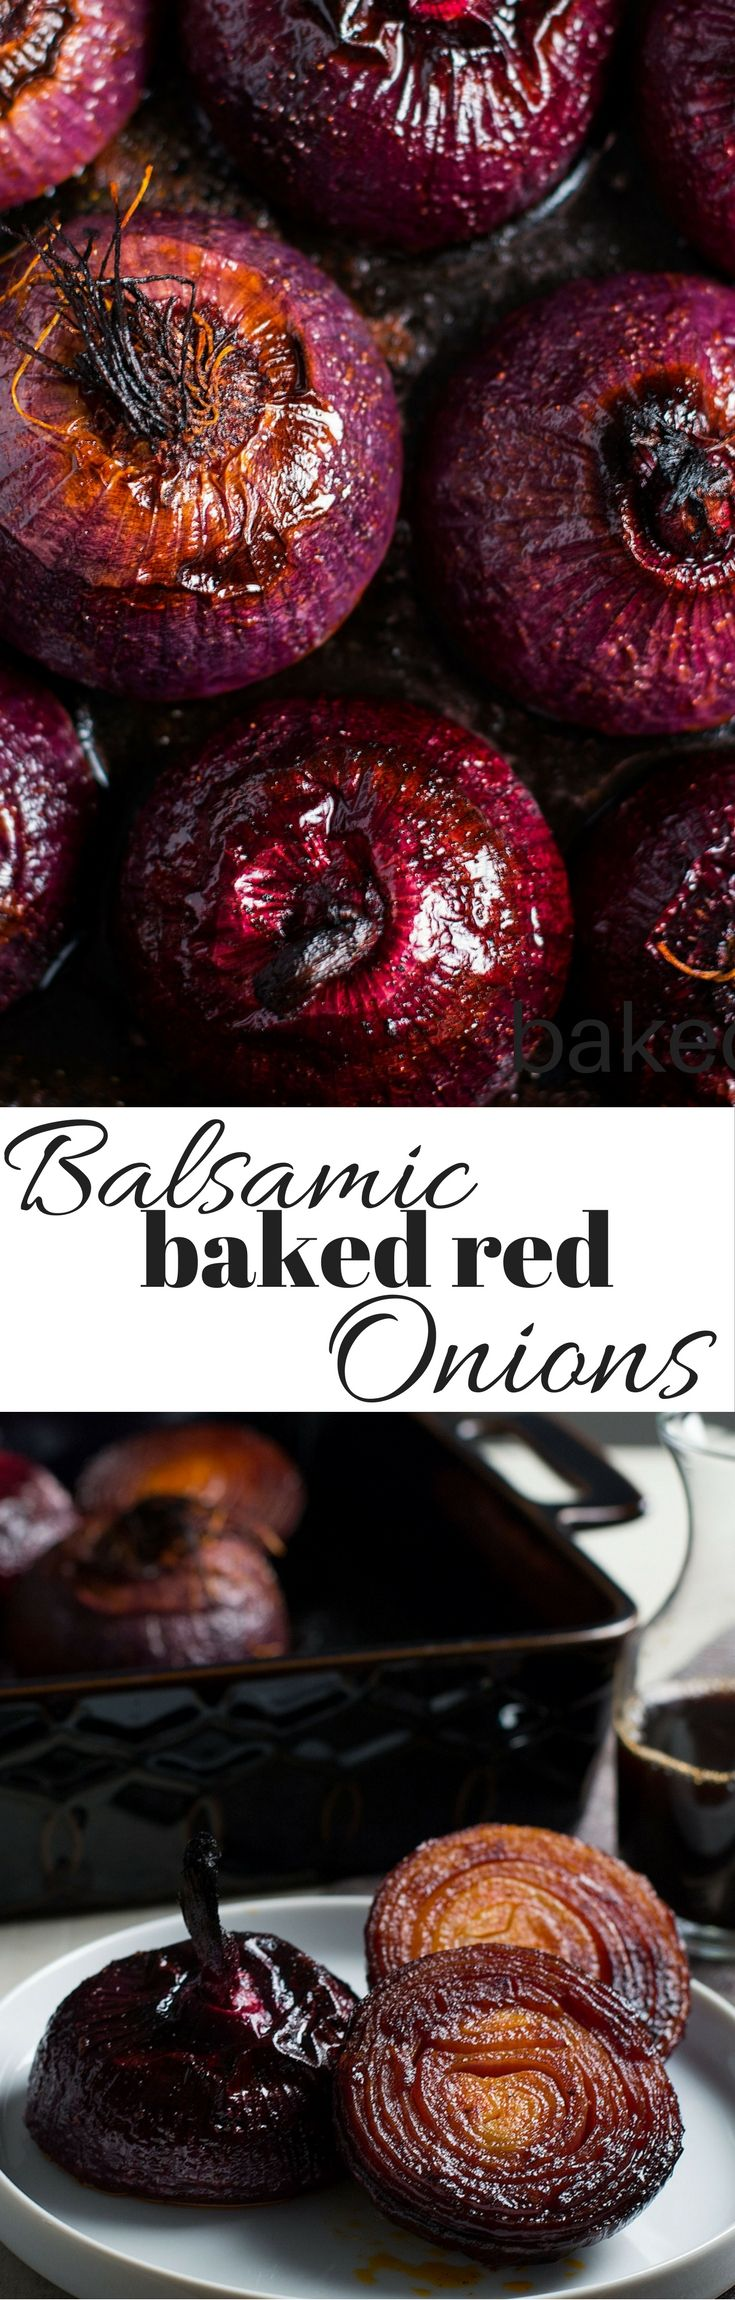 A balance between sweet and savory, these Balsamic Baked Red Onions are an easy side dish that dresses up every day meals and is perfect for special occasions too.: